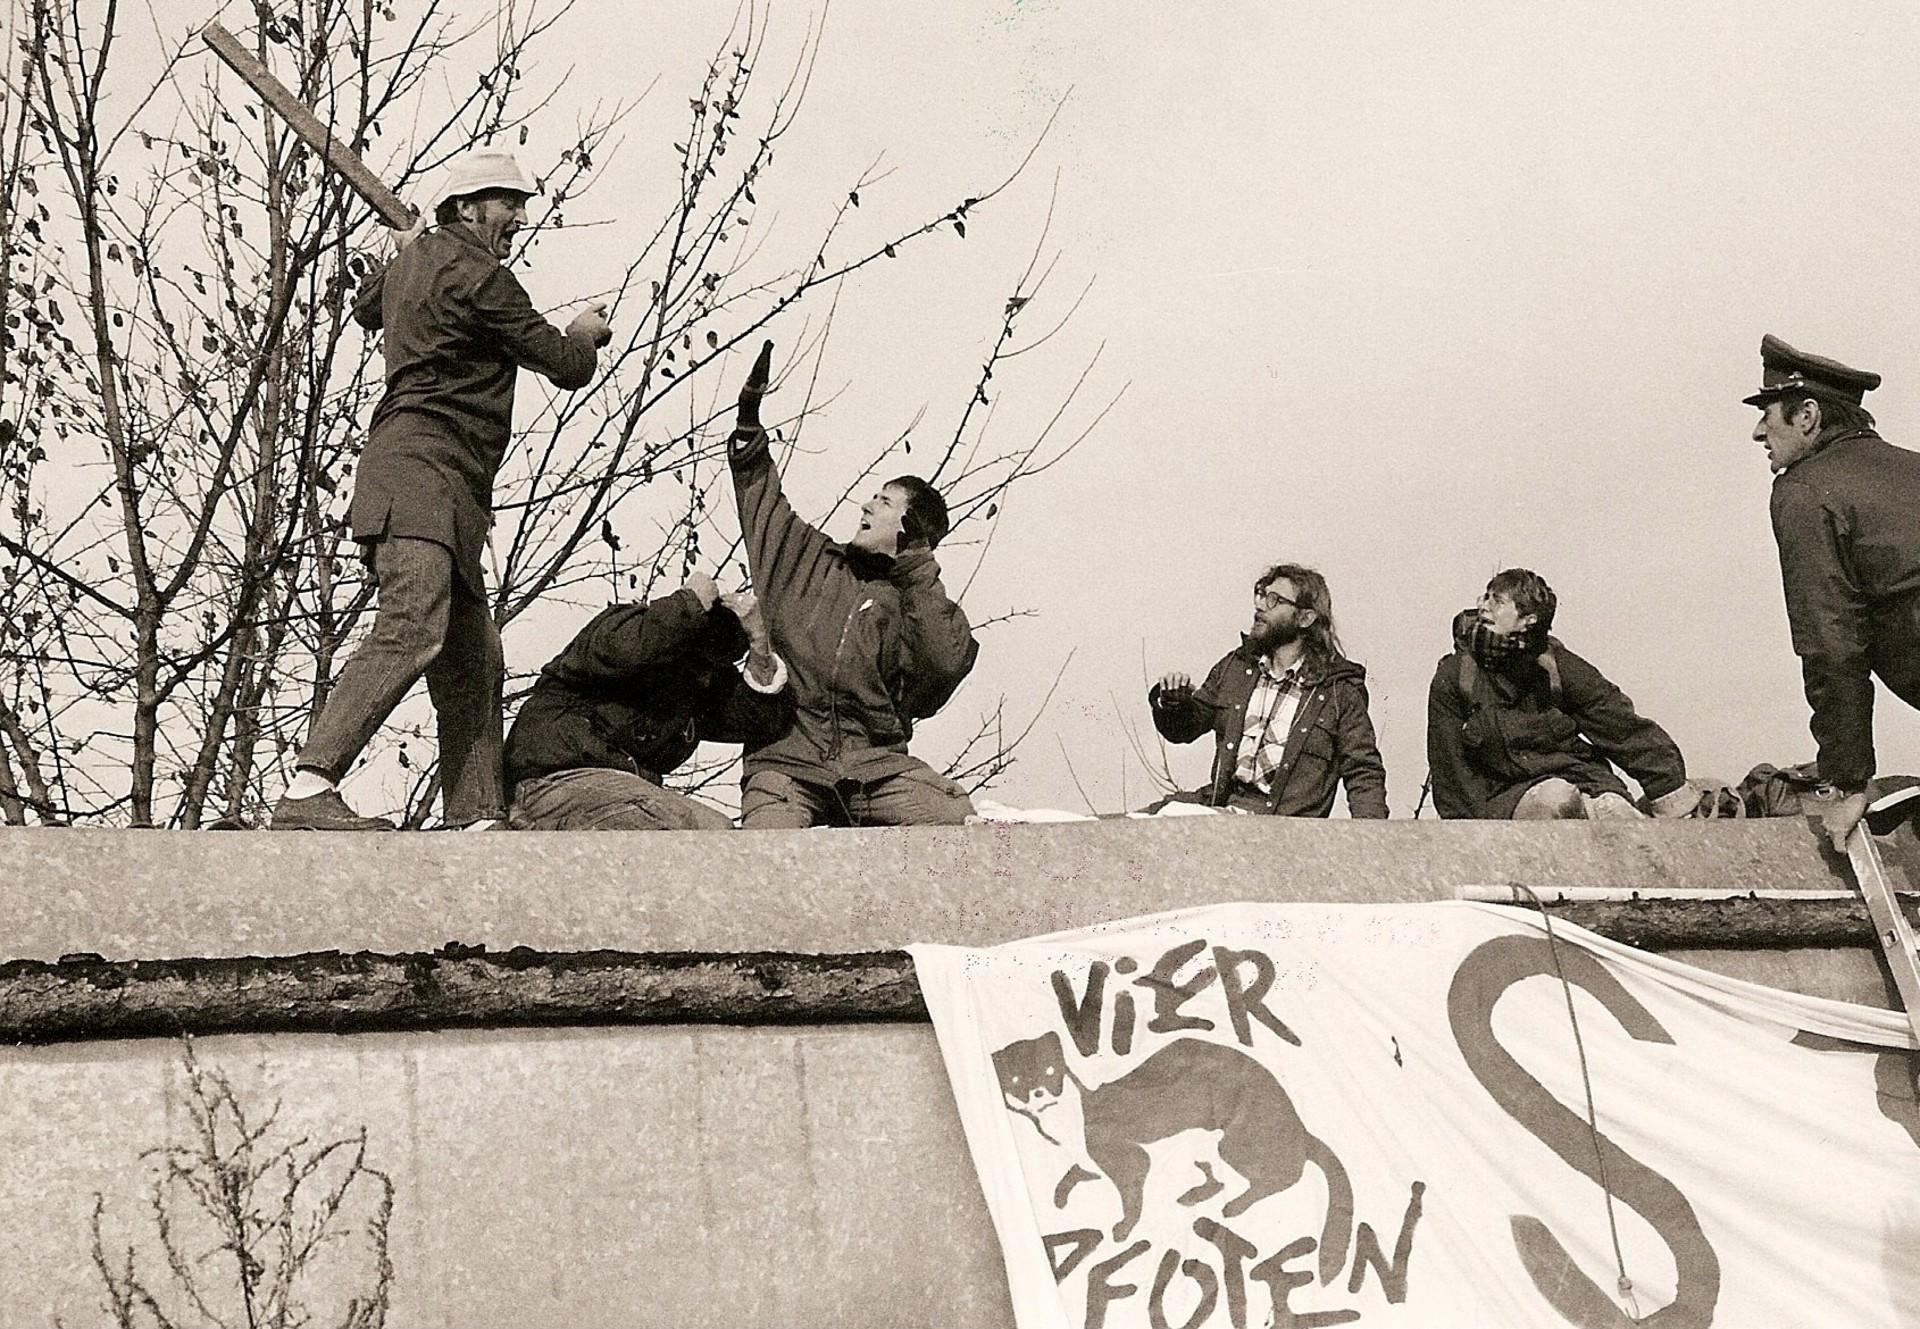 FOUR PAWS activists occupy fur farm in 1990